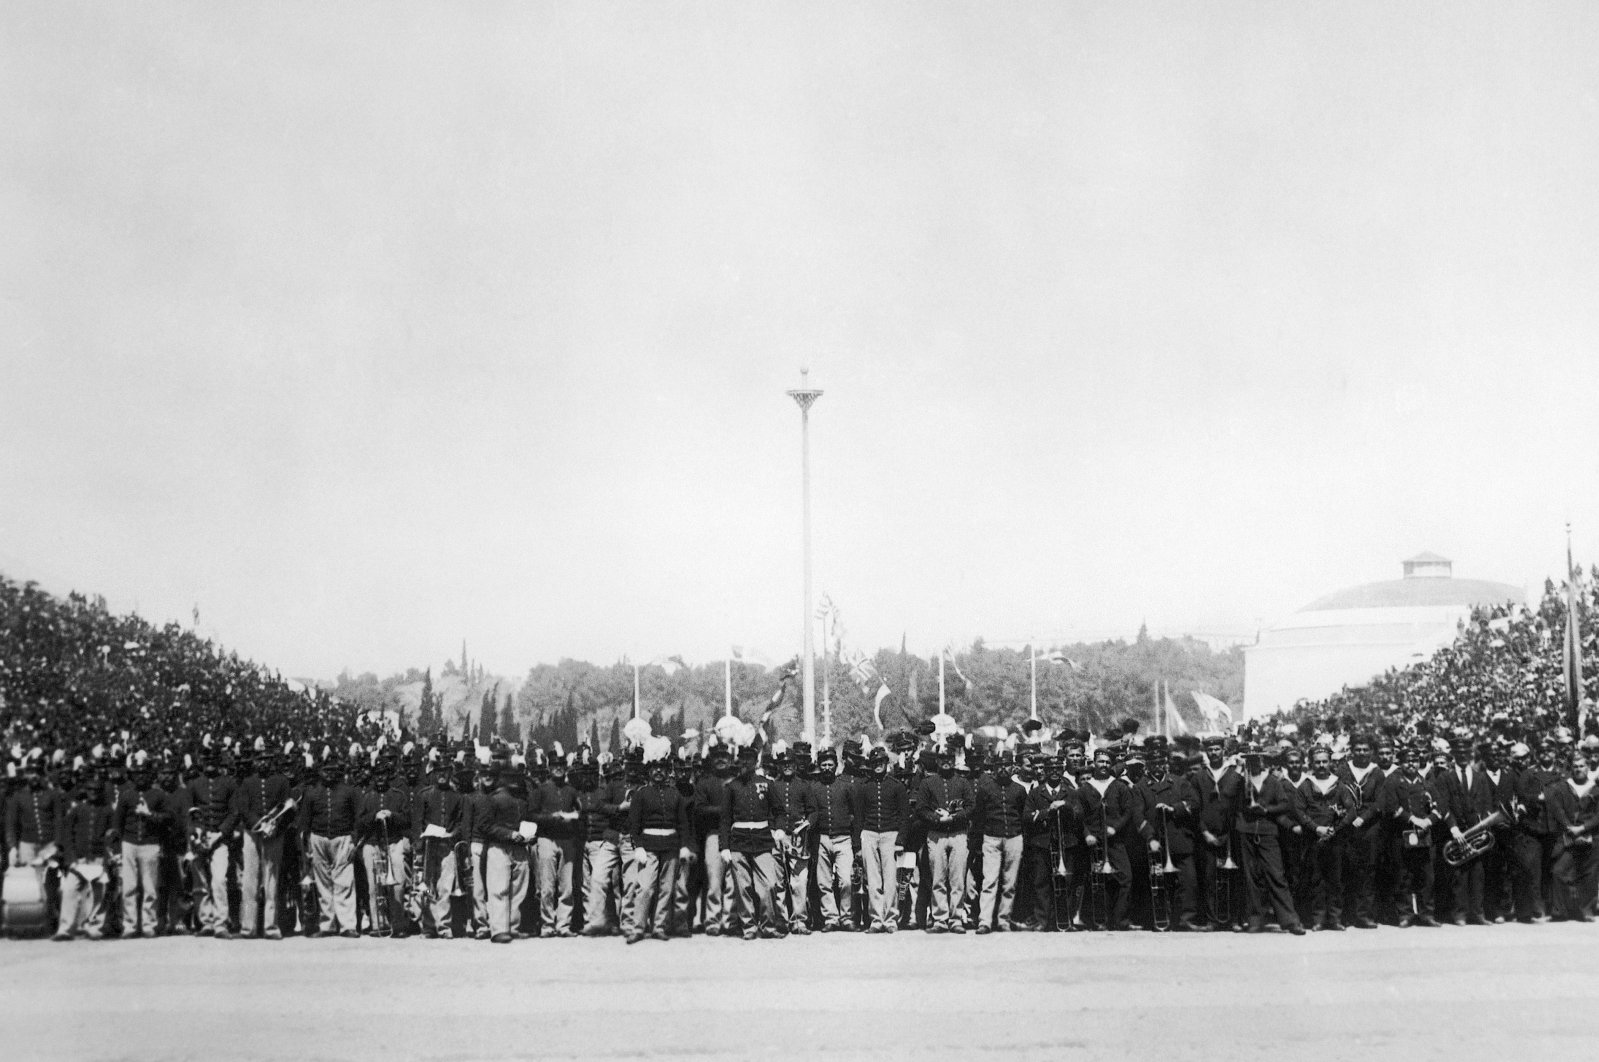 A general view of the huge audience at the opening of the first modern Summer Olympic Games, Athens, Greece, April 6, 1896. (AP Photo)